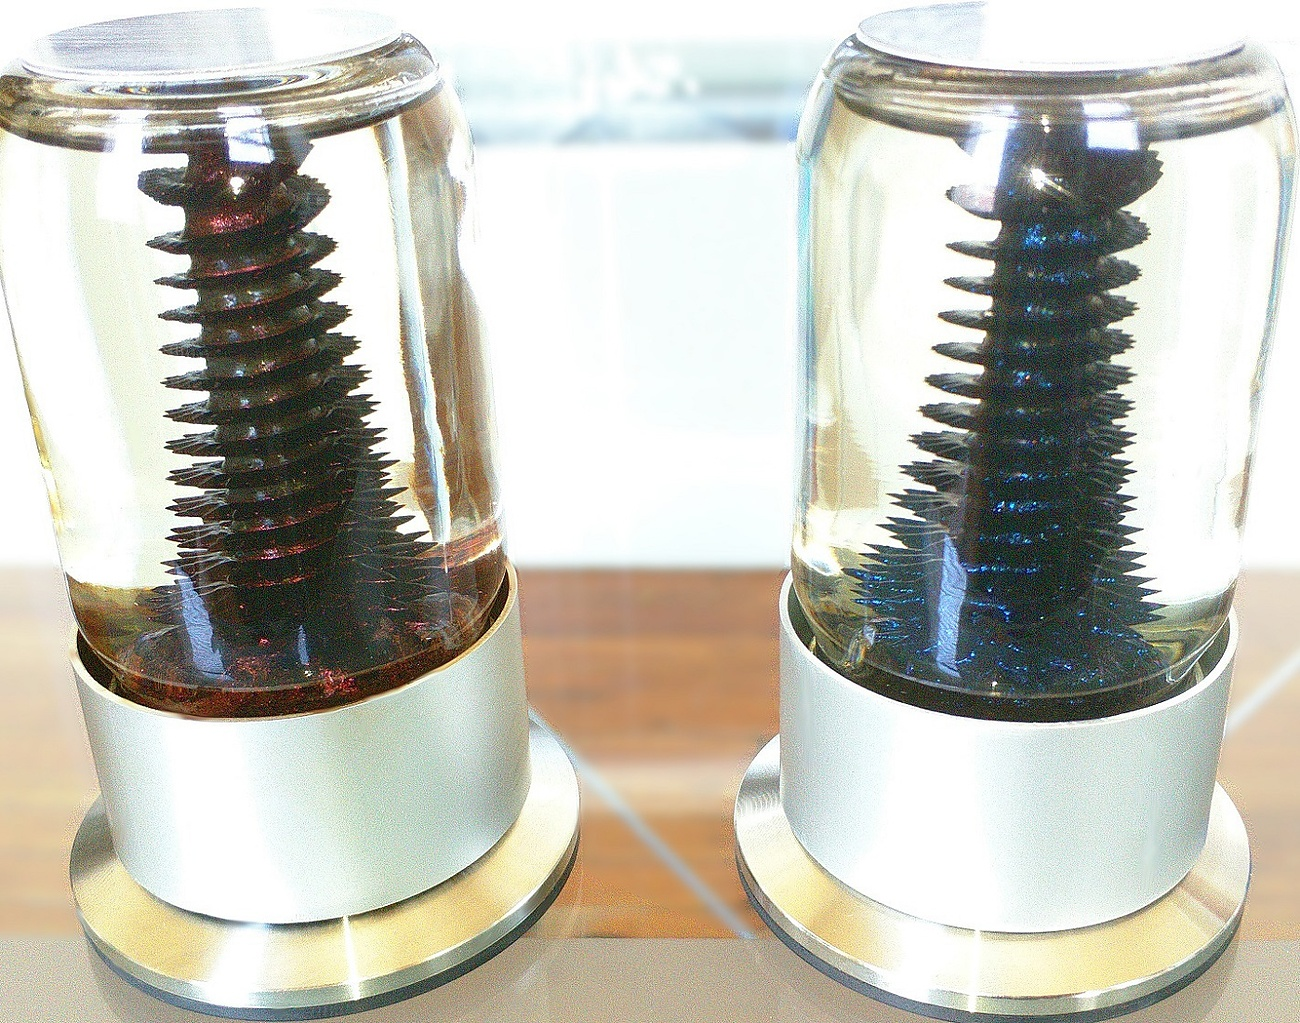 RIZE – Spinning Ferrofluid Display